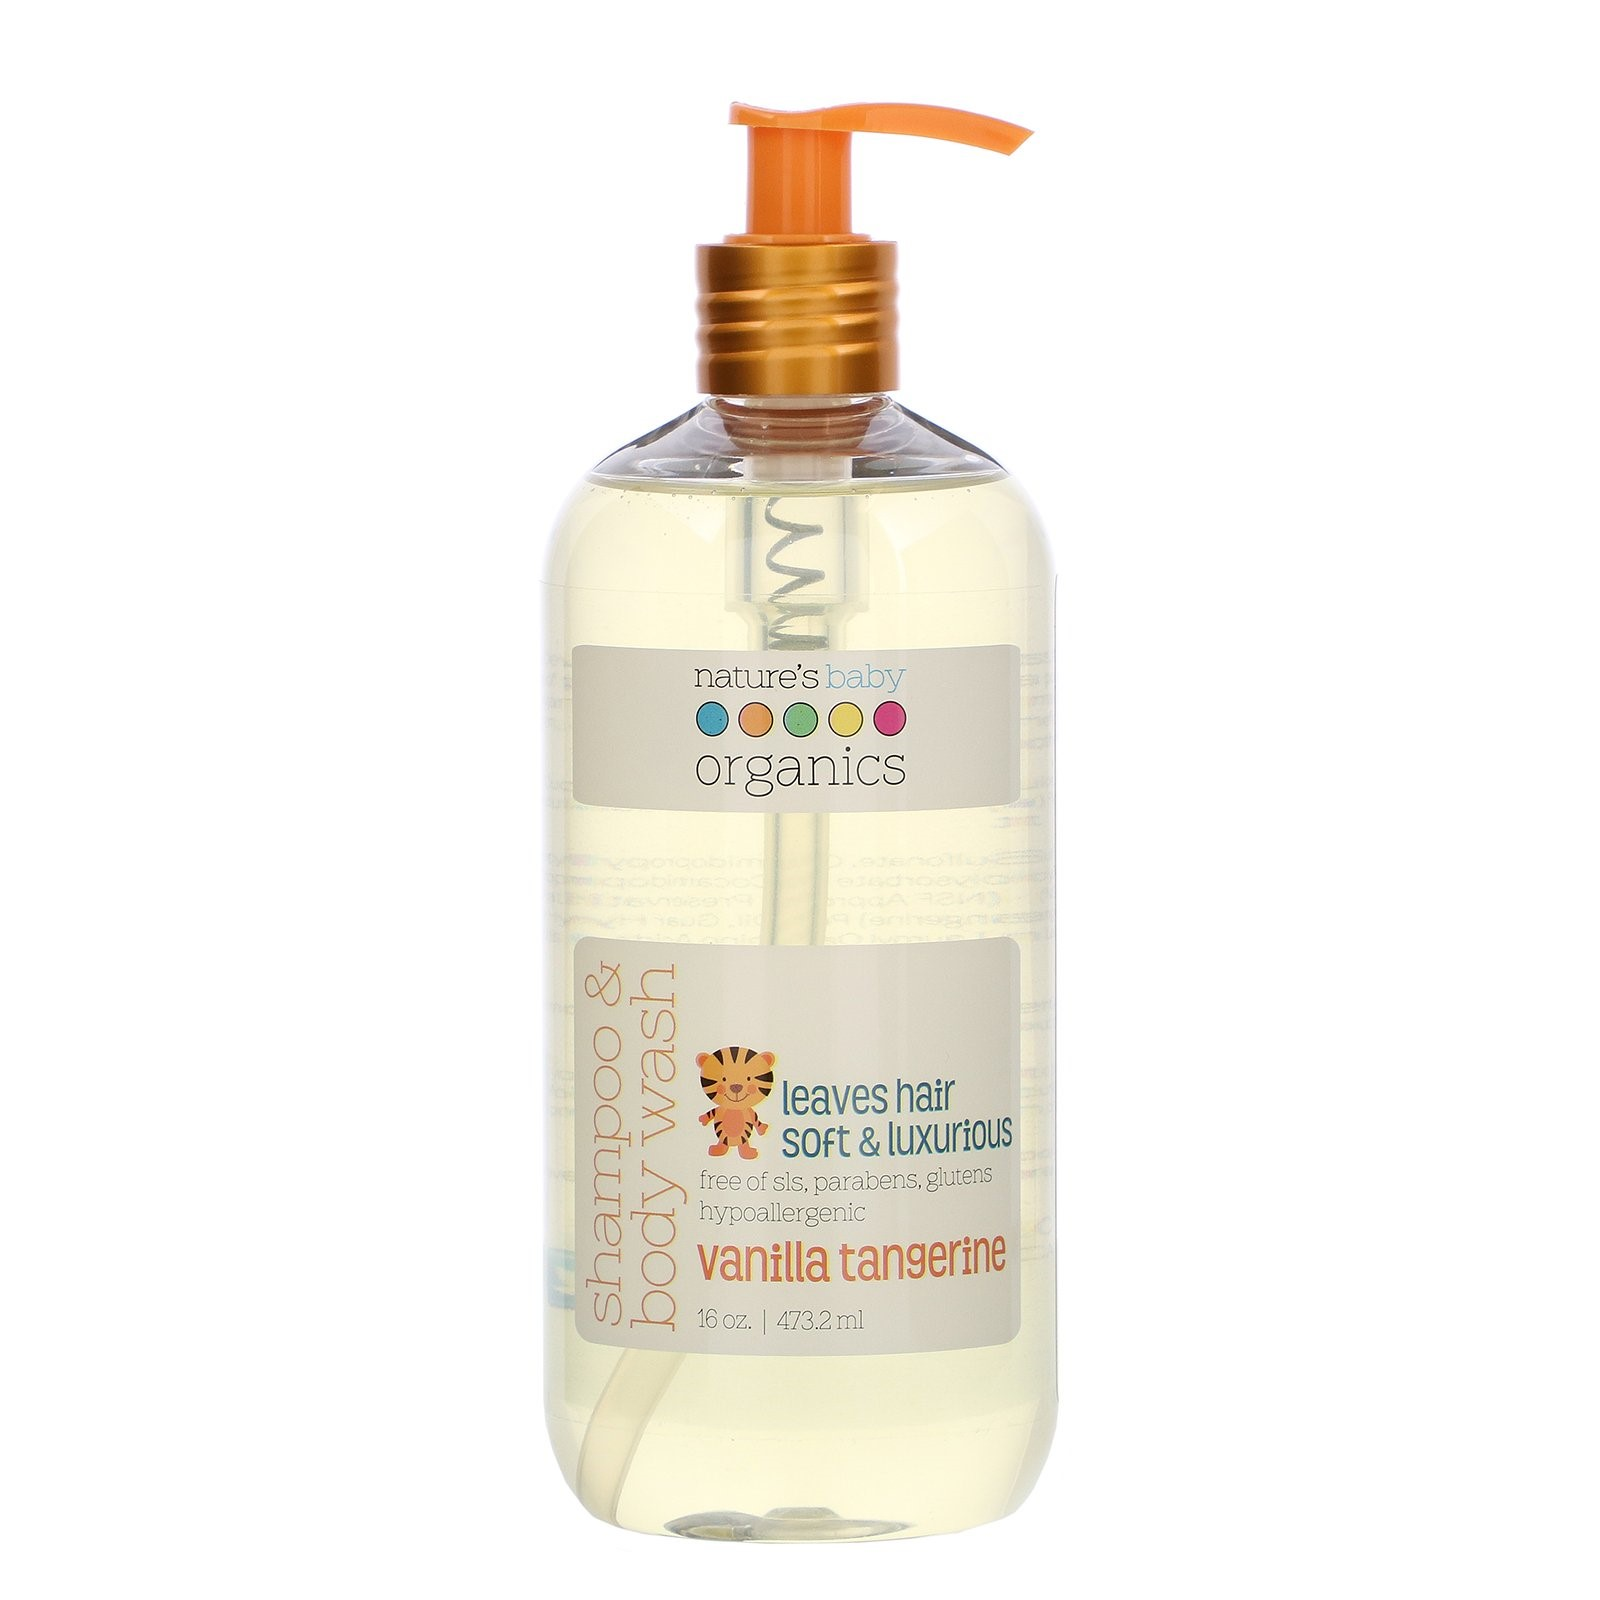 Natures-Baby-Organics-Shampoo-Body-Wash